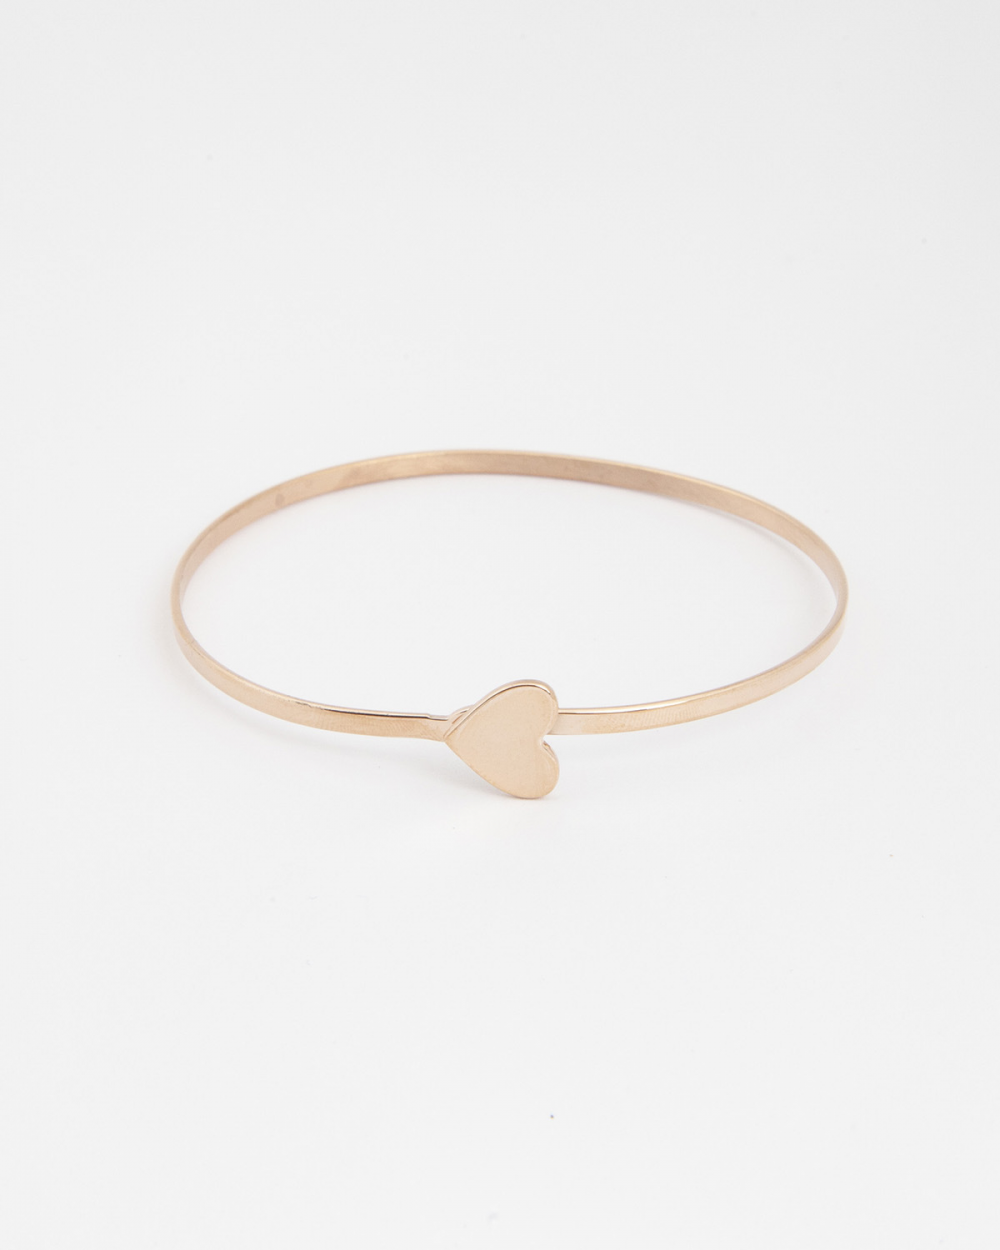 Archive Sale HEART BANGLE / ROSE GOLD FINISH NOVE25